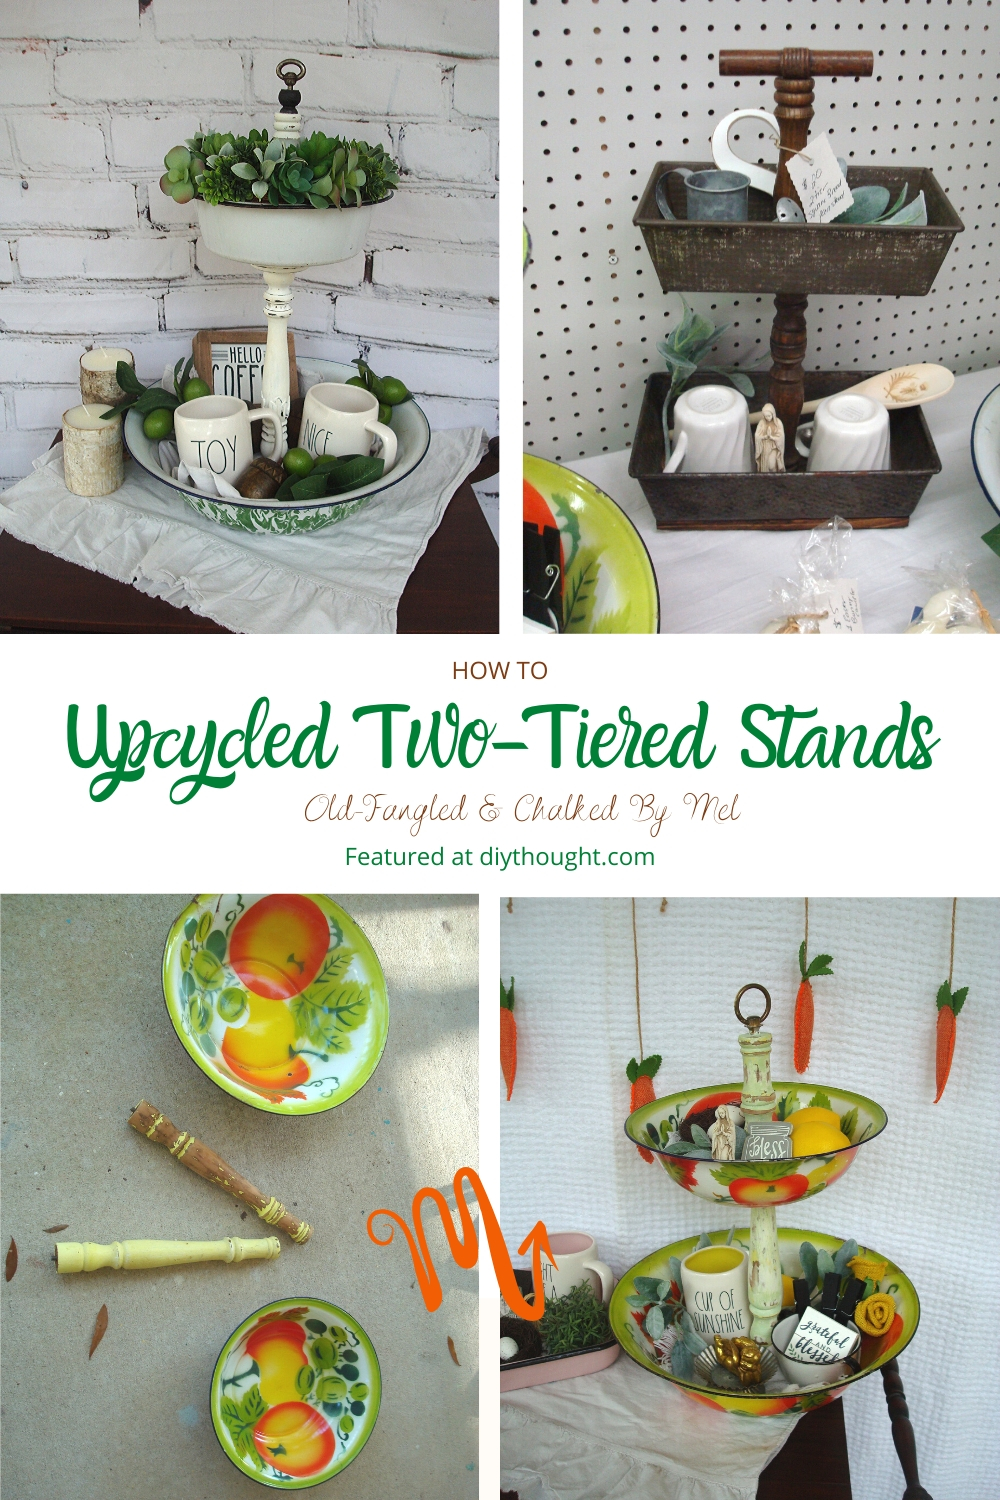 how to upcycle two tiered stands